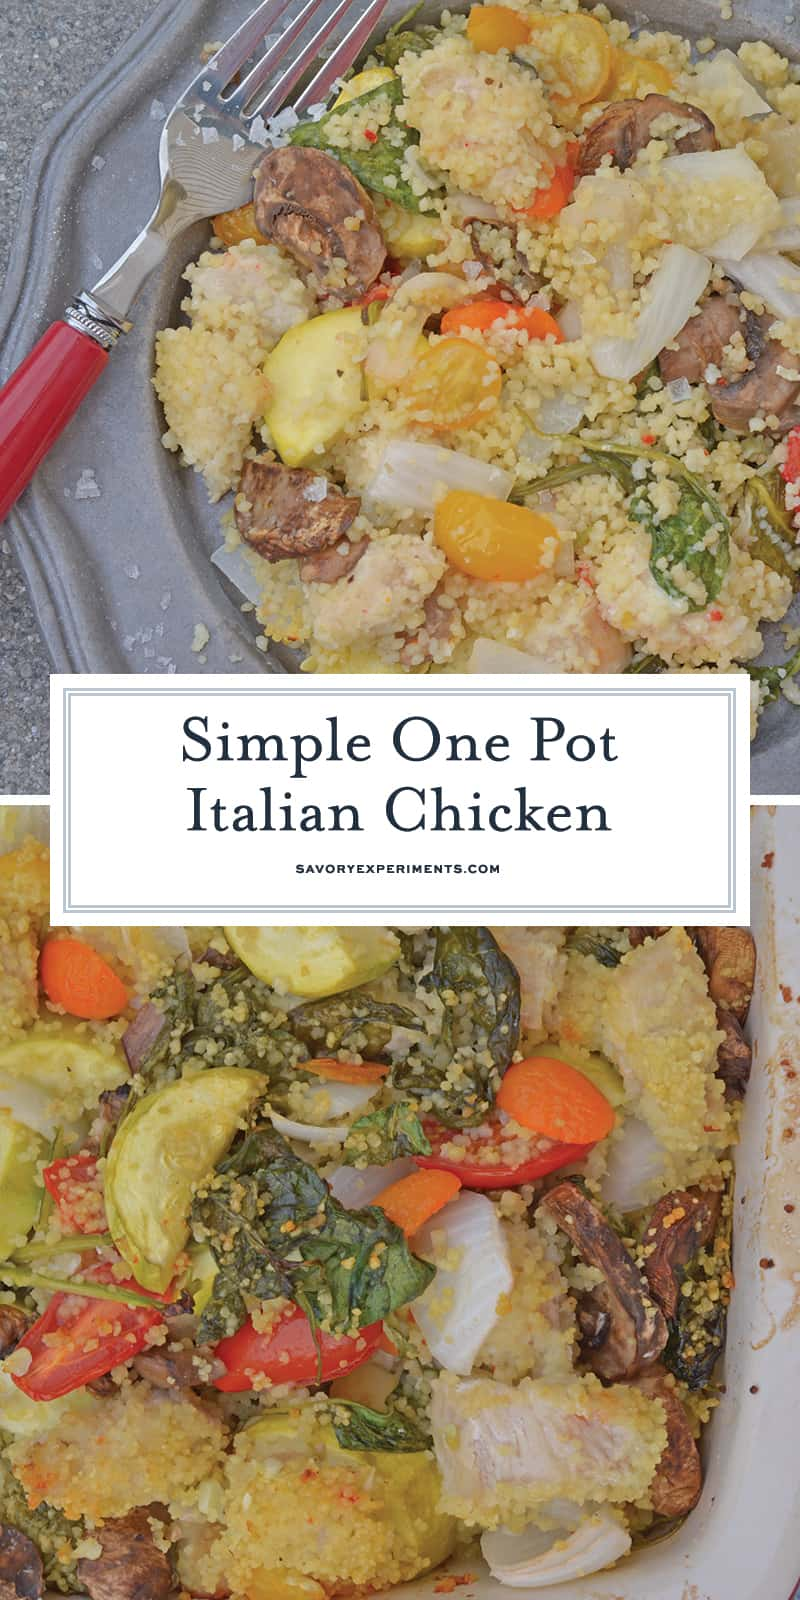 One Pot Italian Chicken is a favorite simple chicken recipe using only one dish and simple ingredients. Ready in just 45 minutes! #onepotmeals #simplechickenrecipes www.savoryexperiments.com